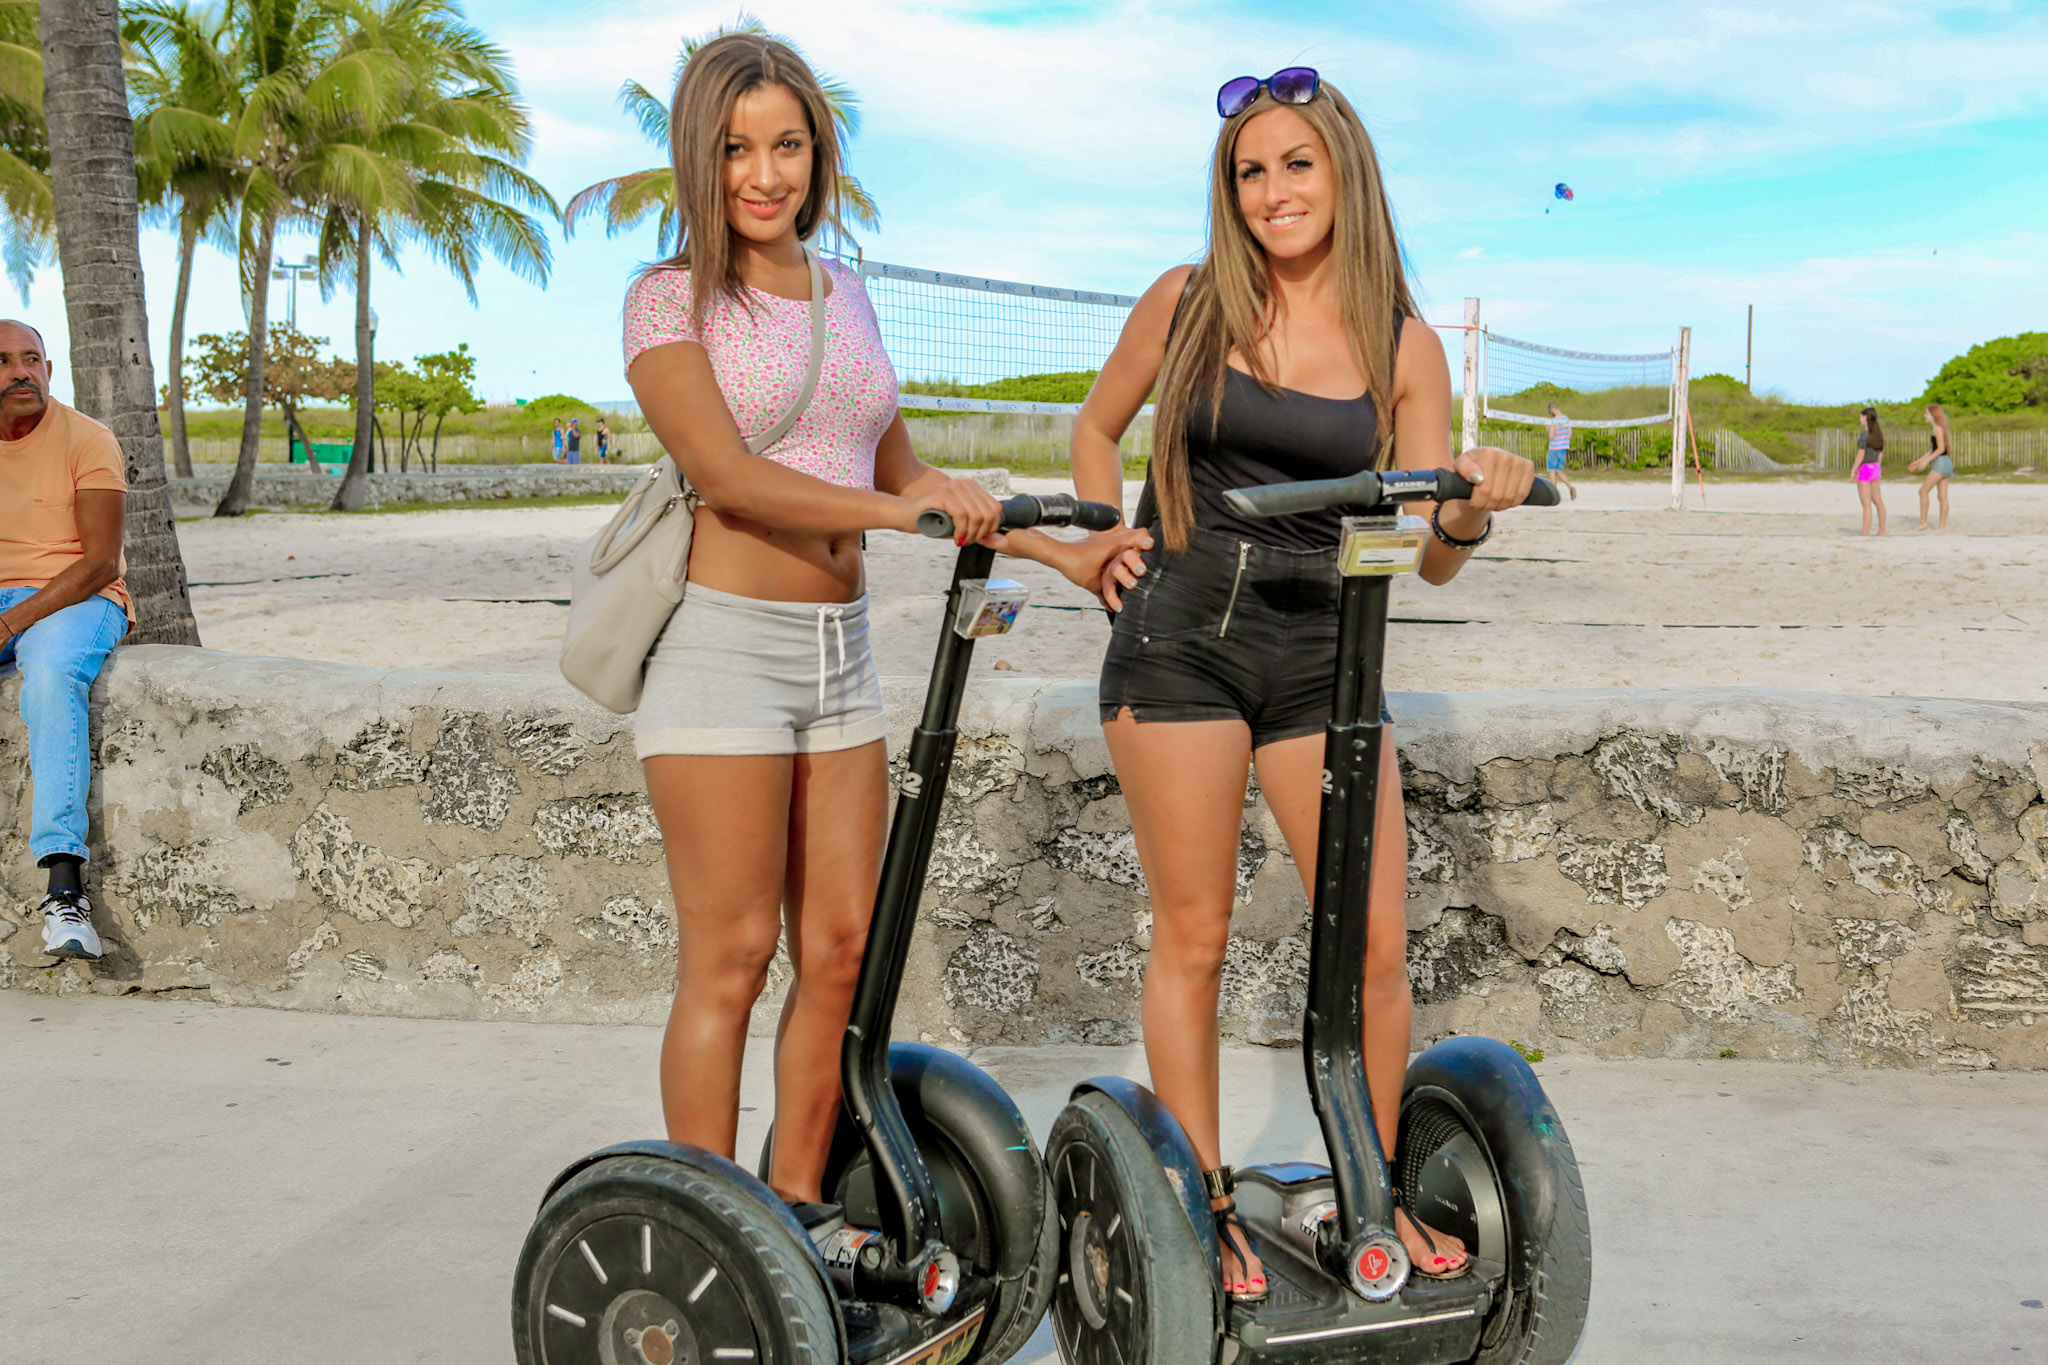 segway-tour-south-beach-at-the-boardwalk.jpg